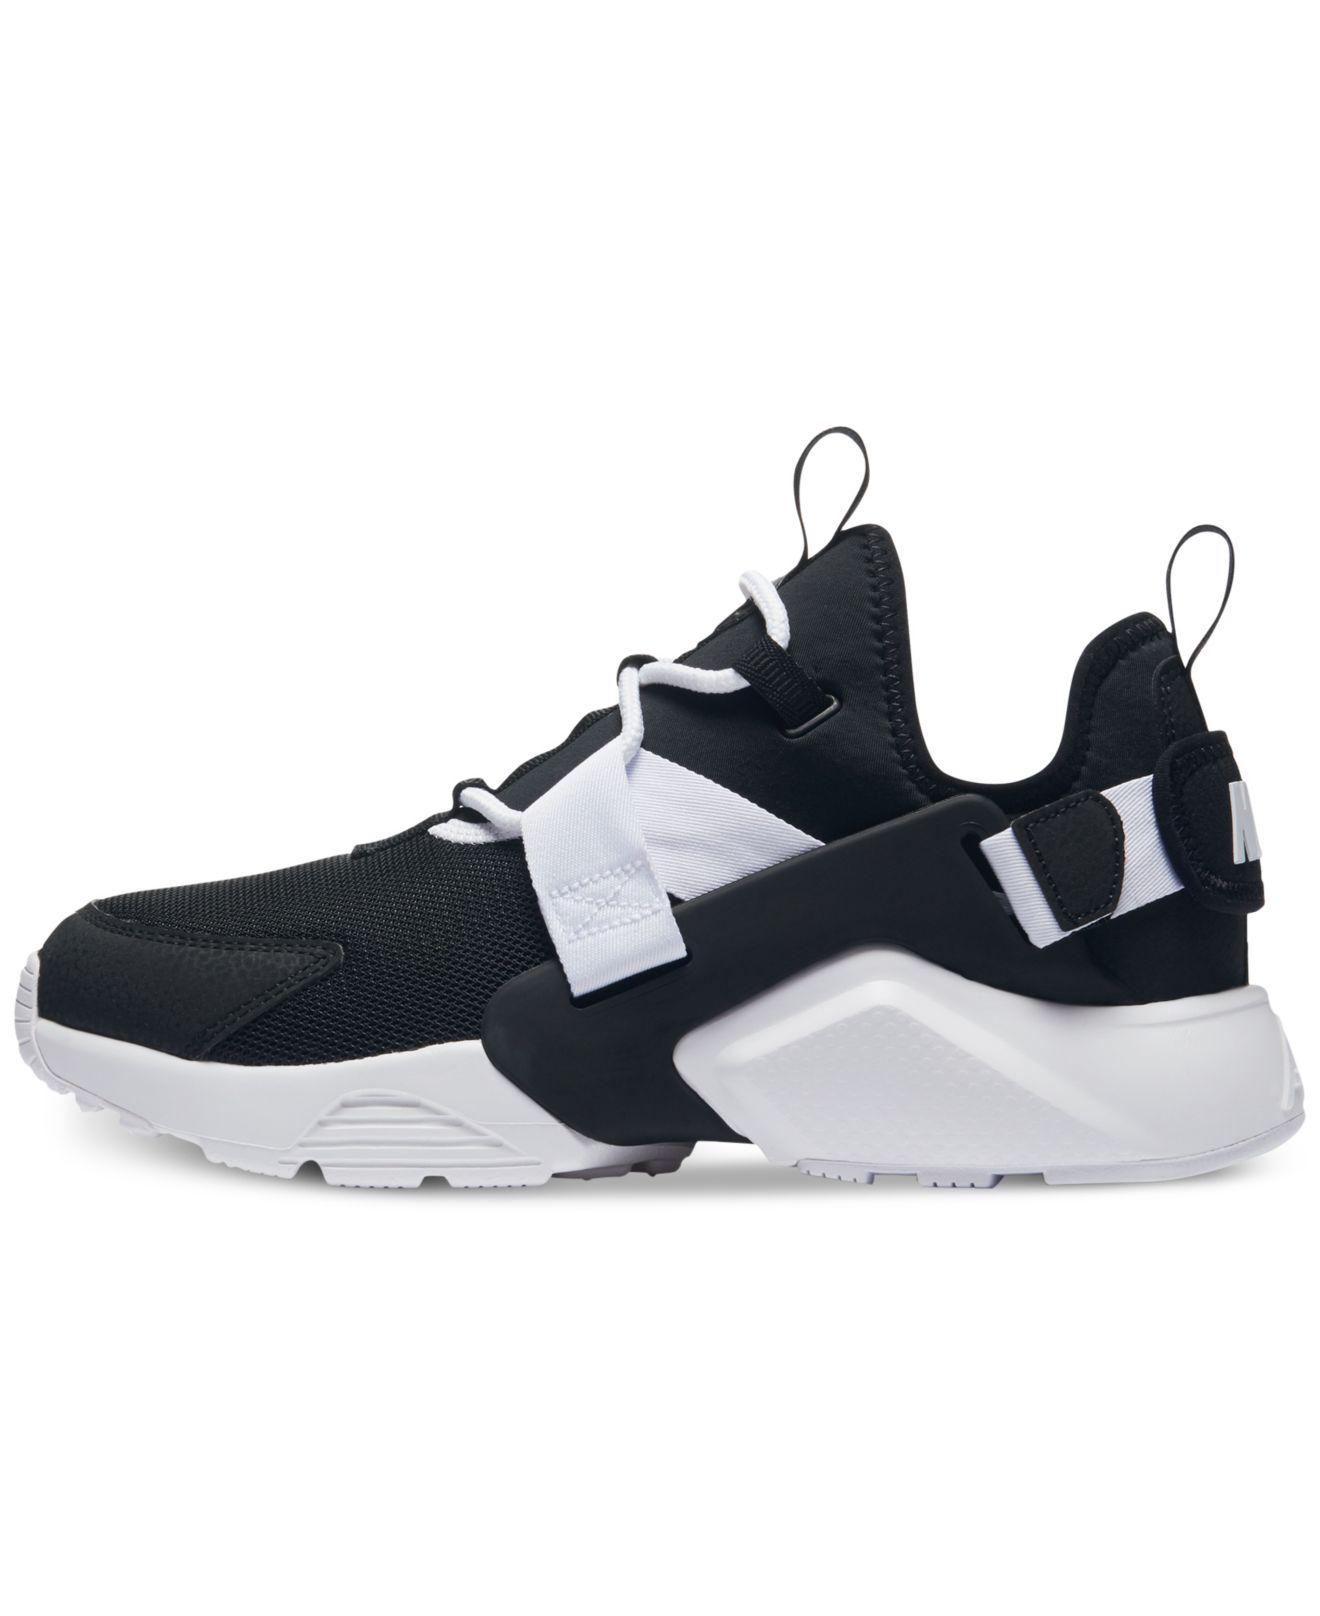 pretty nice a510b 04586 amazon lyst nike air huarache city low casual sneakers from finish line in  black save 25.83333333333333